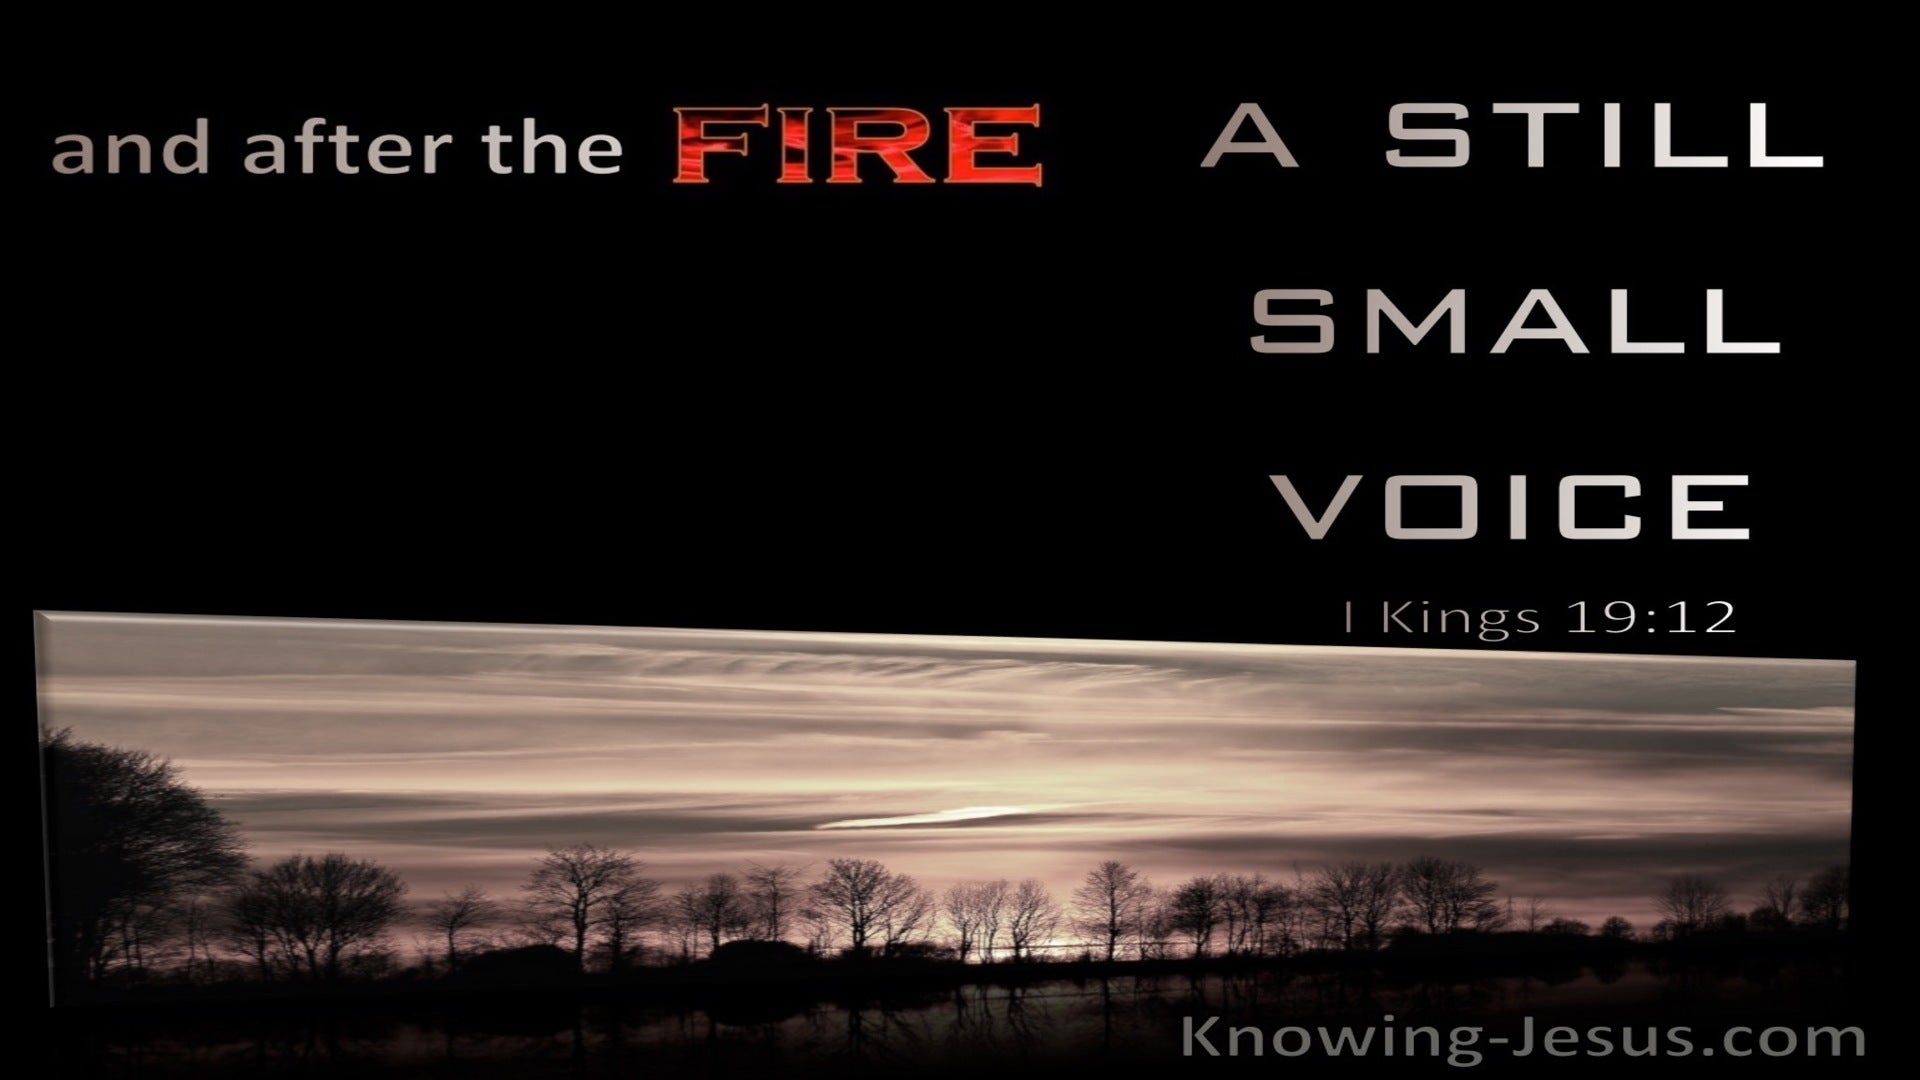 1 Kings 19:12 And After The Fire A Still Small Voice (black)